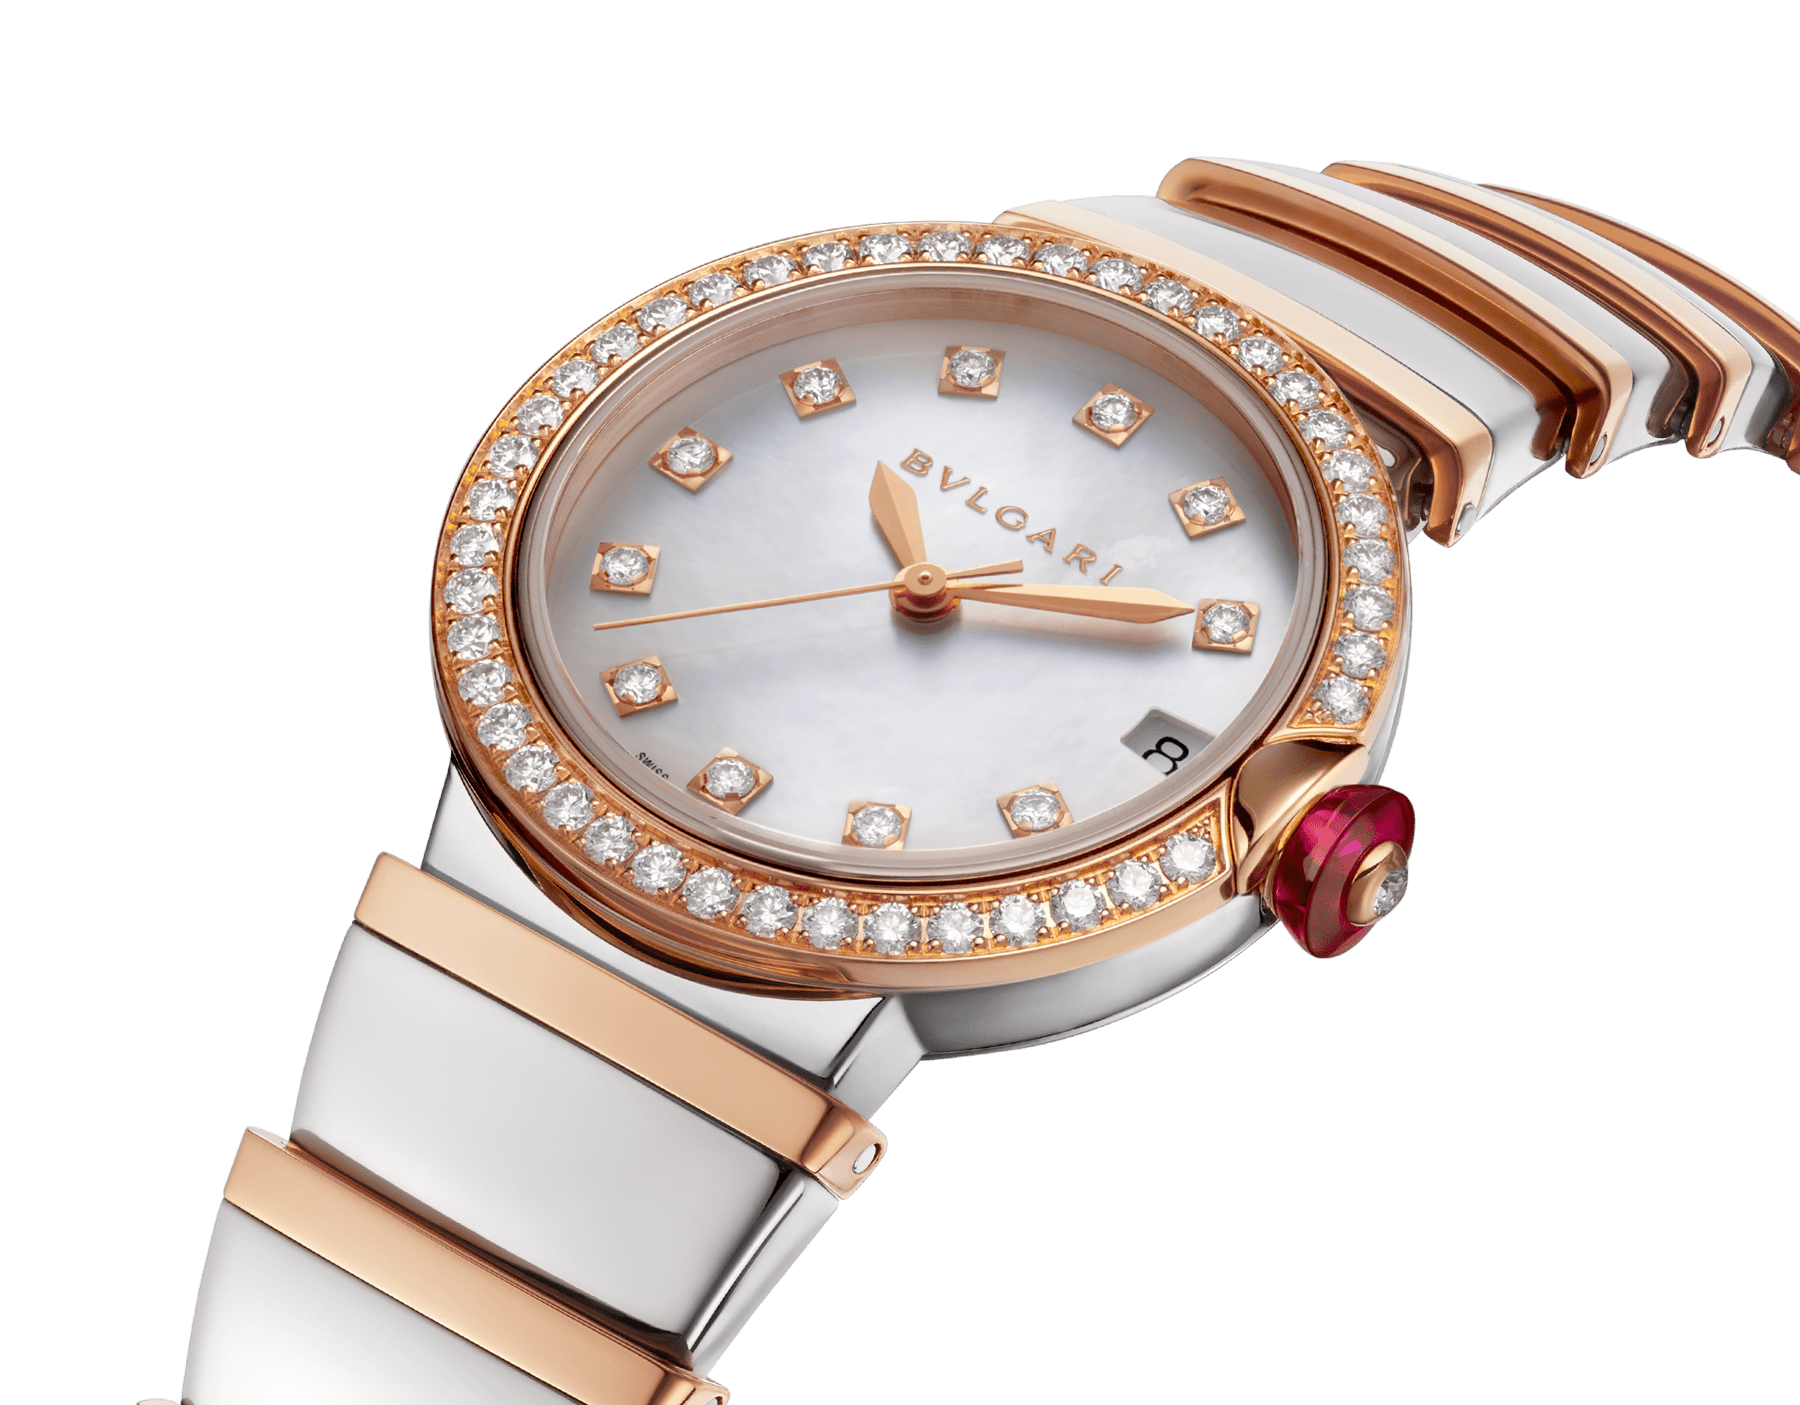 LVCEA watch in 18kt rose gold and stainless steel case and bracelet, set with diamonds on the bezel, and white mother-of-pearl dial with diamond indexes. 102476 image 2